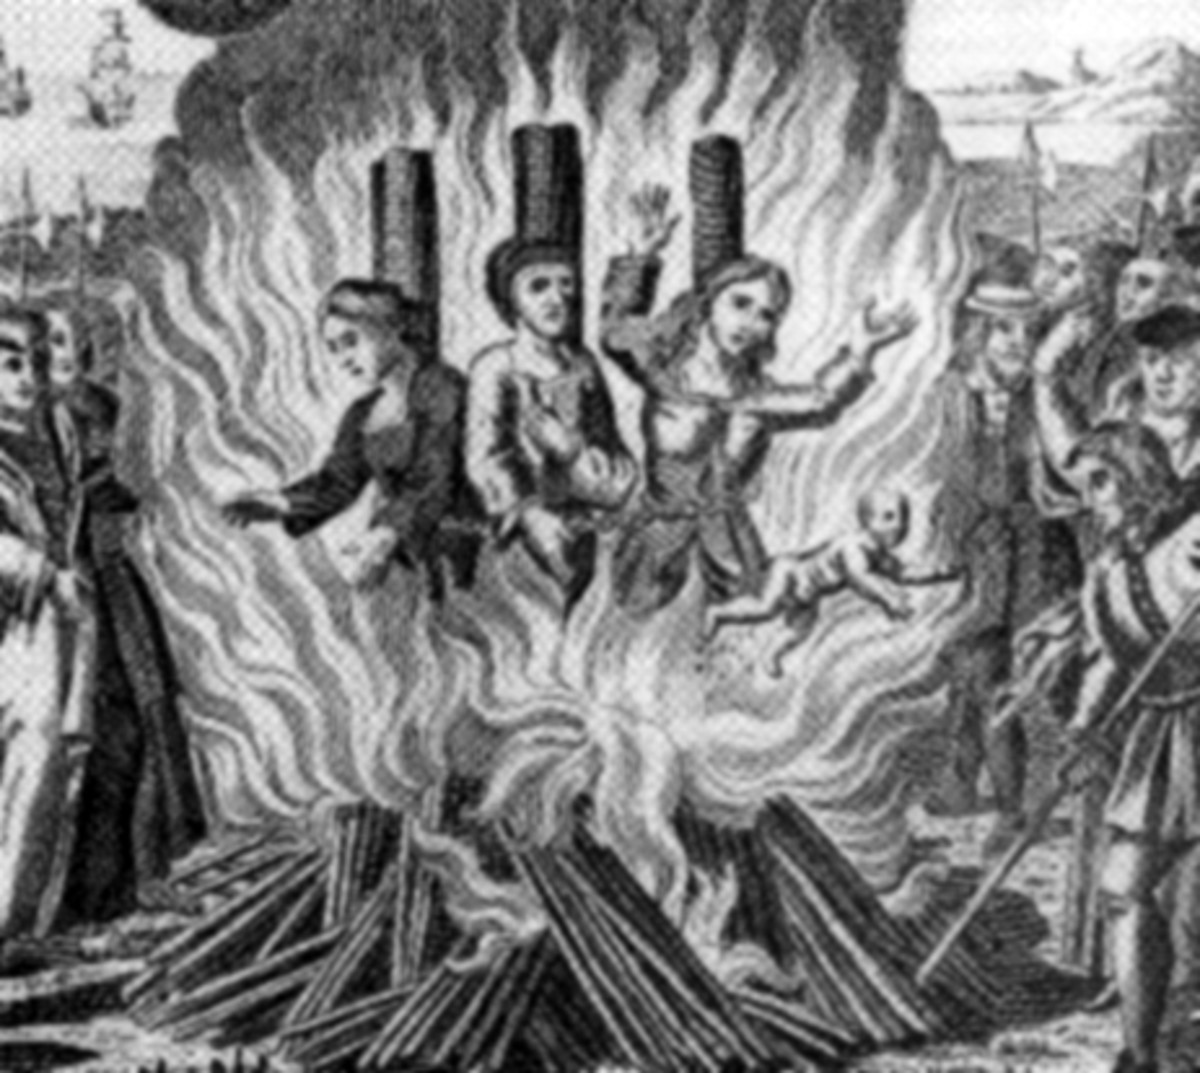 Many women were burned alive, when they suspected them of witchcraft.